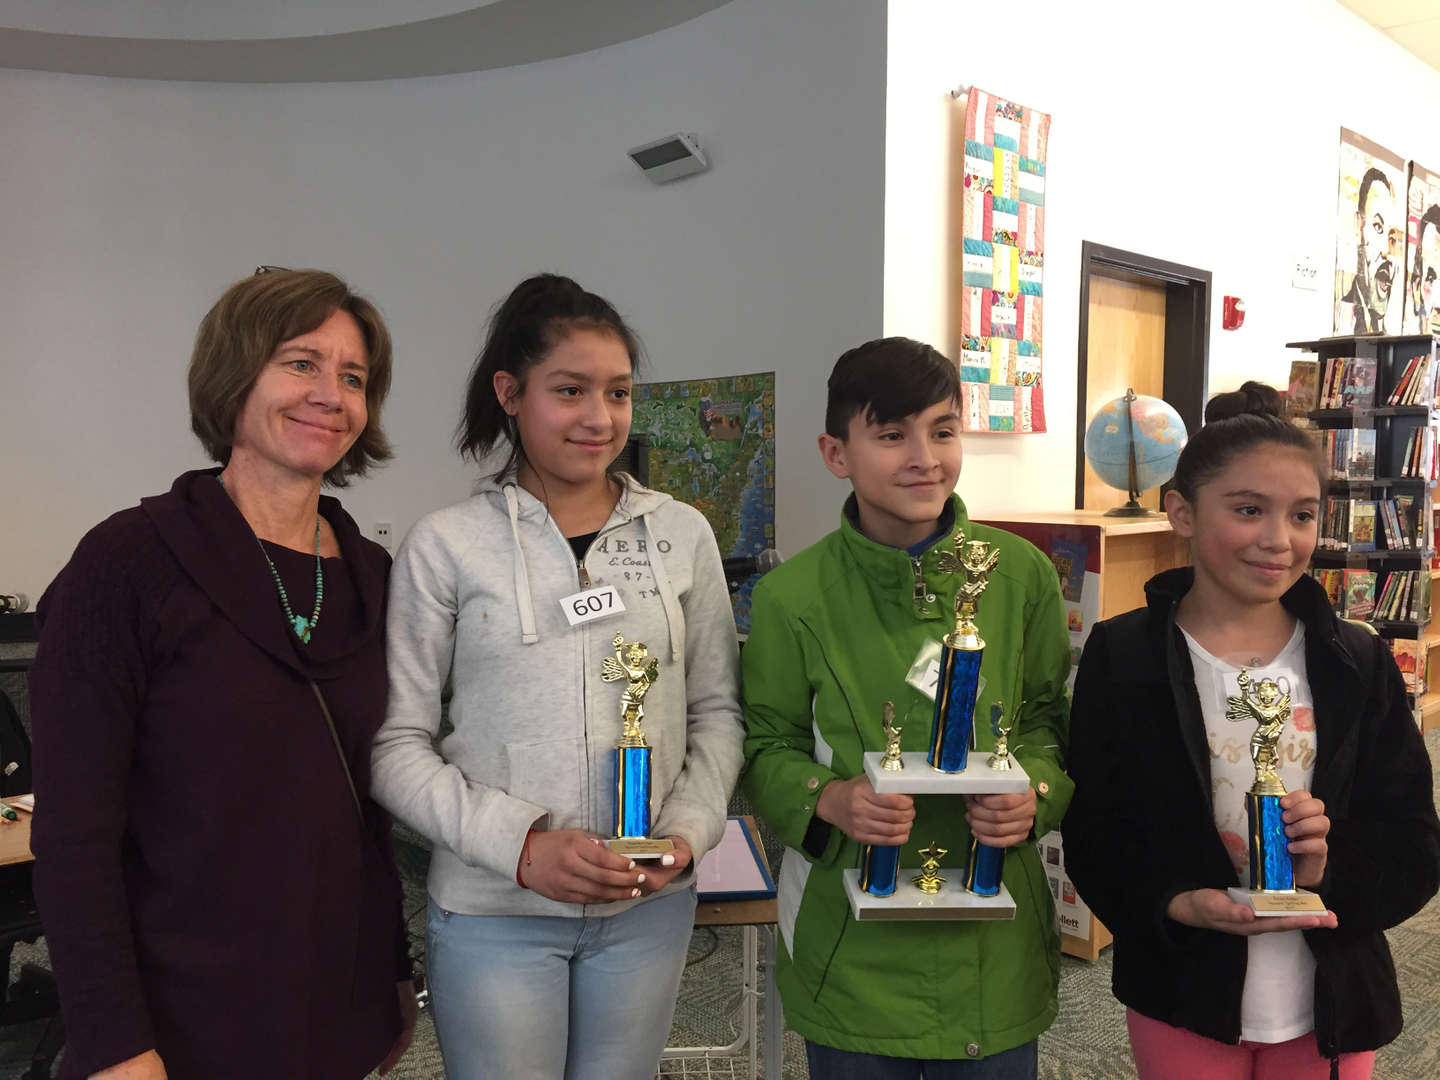 3 students and teacher with trophies